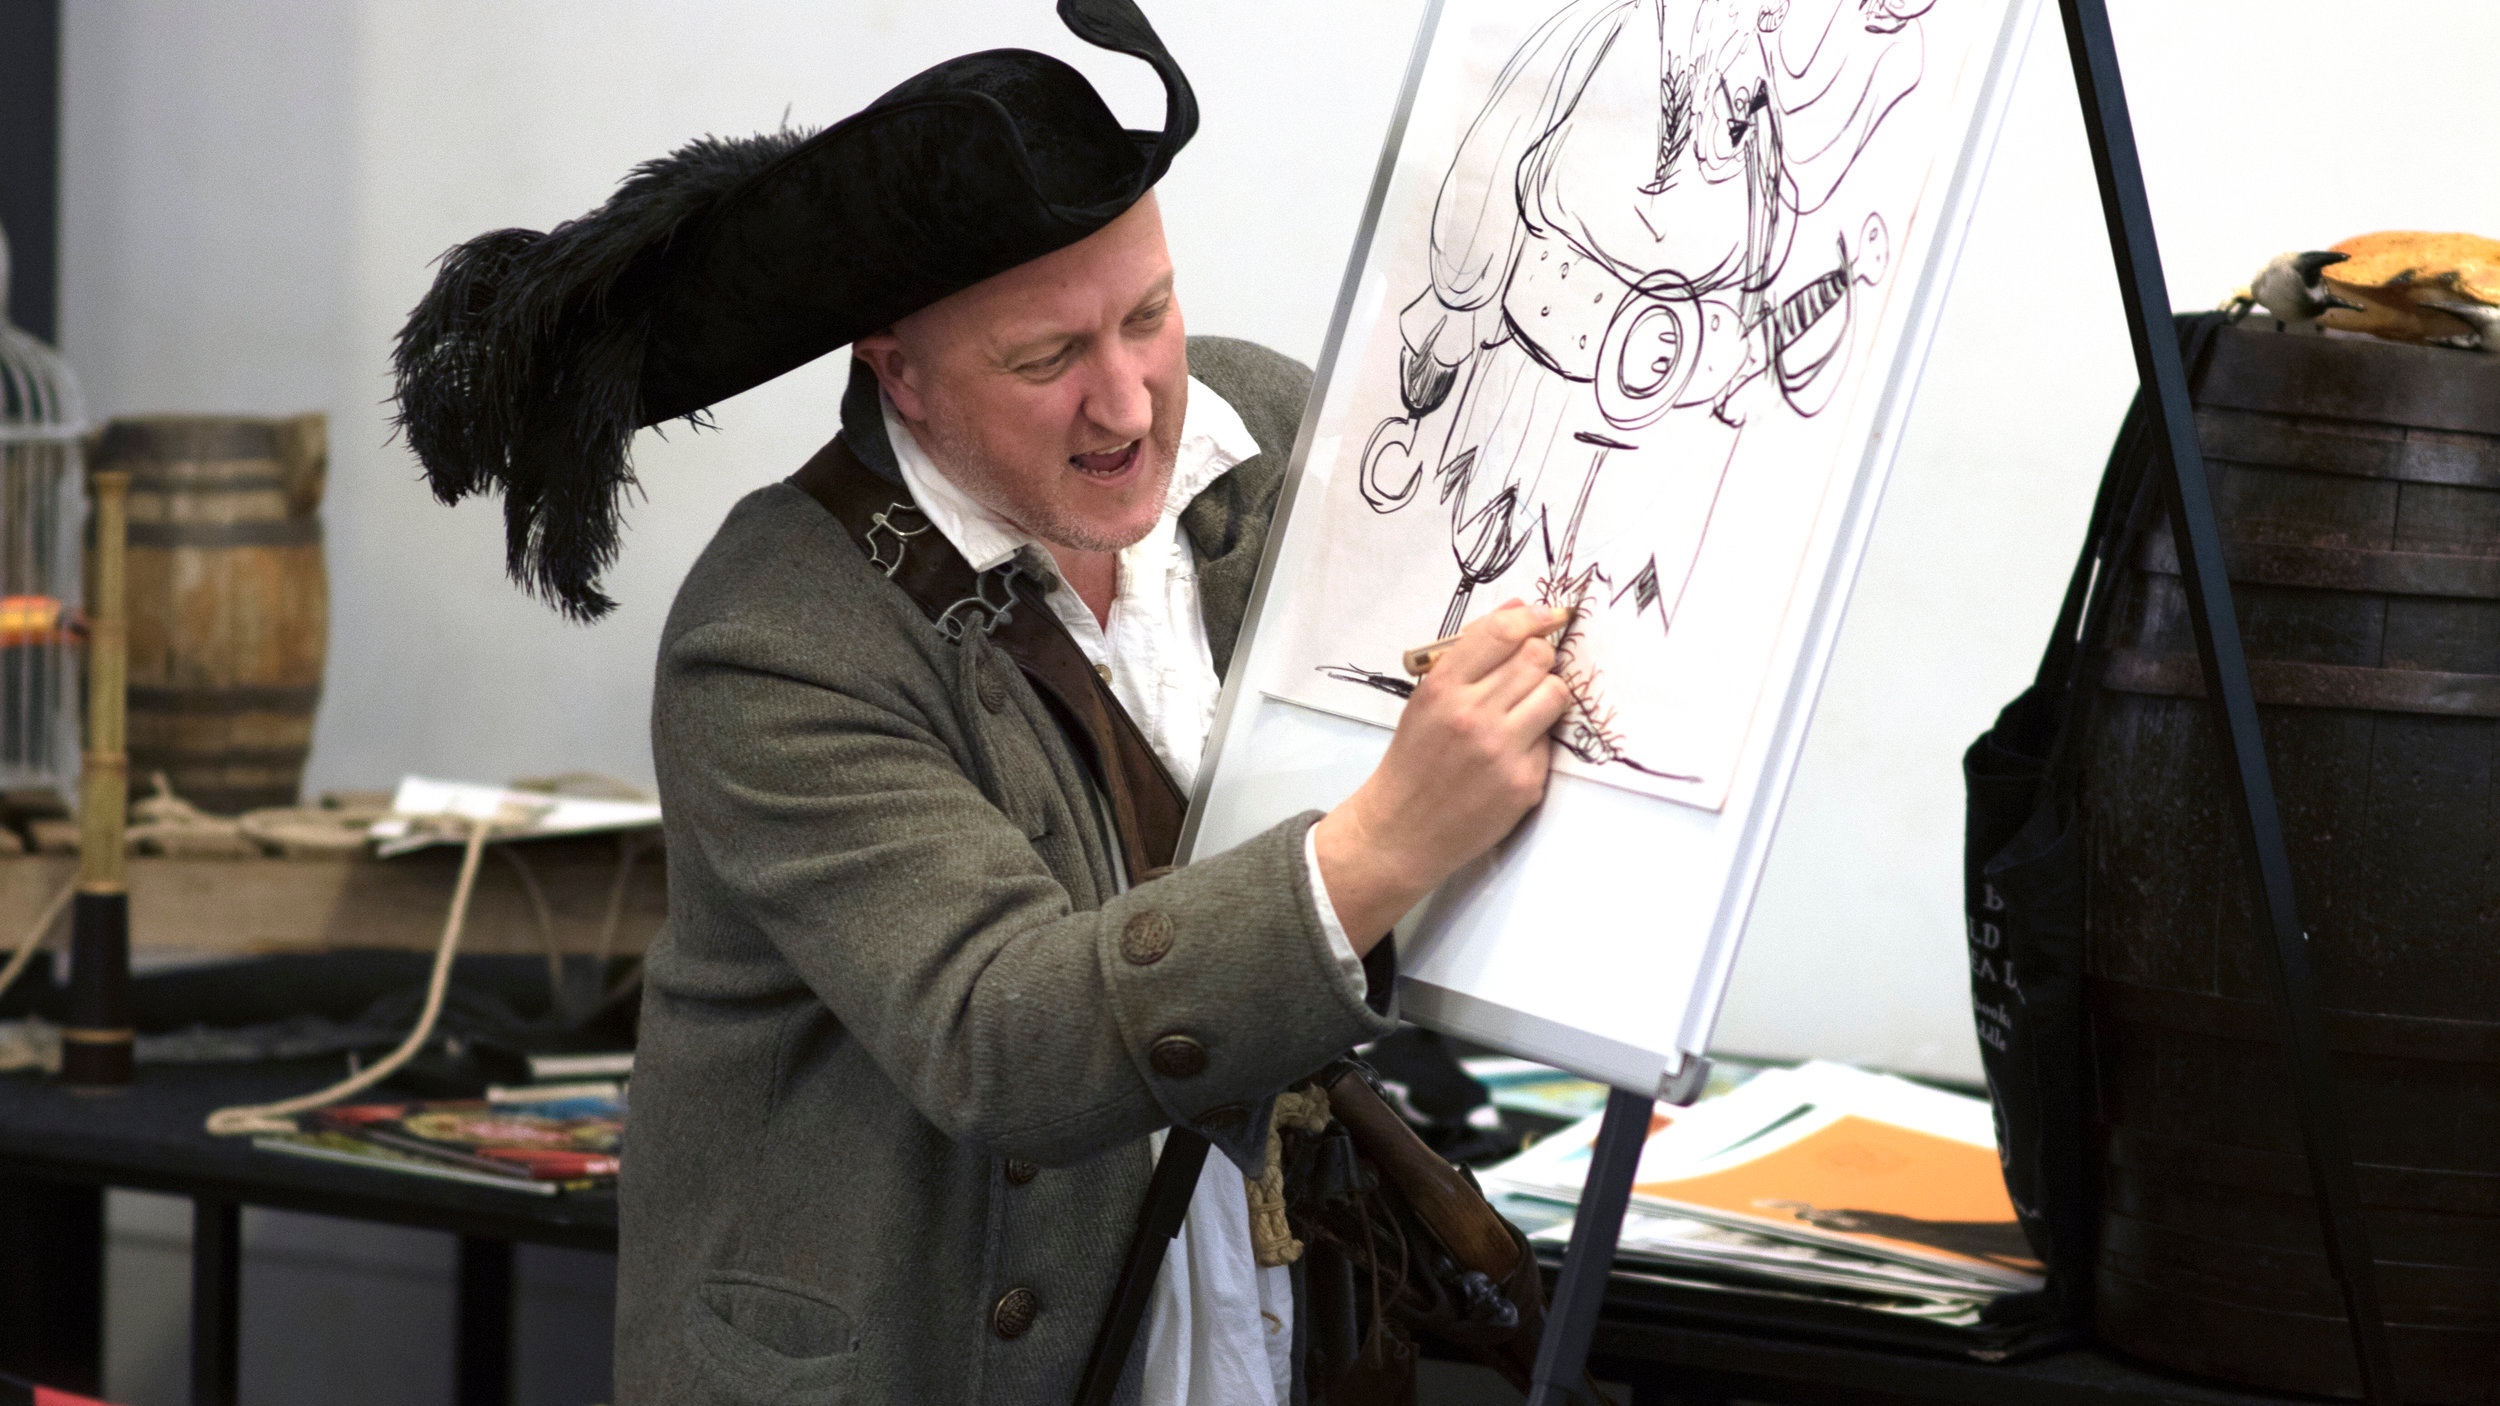 Johnny+Doddle+illustrates+at+Waterstones+The+Pirate+Cruncher.jpg